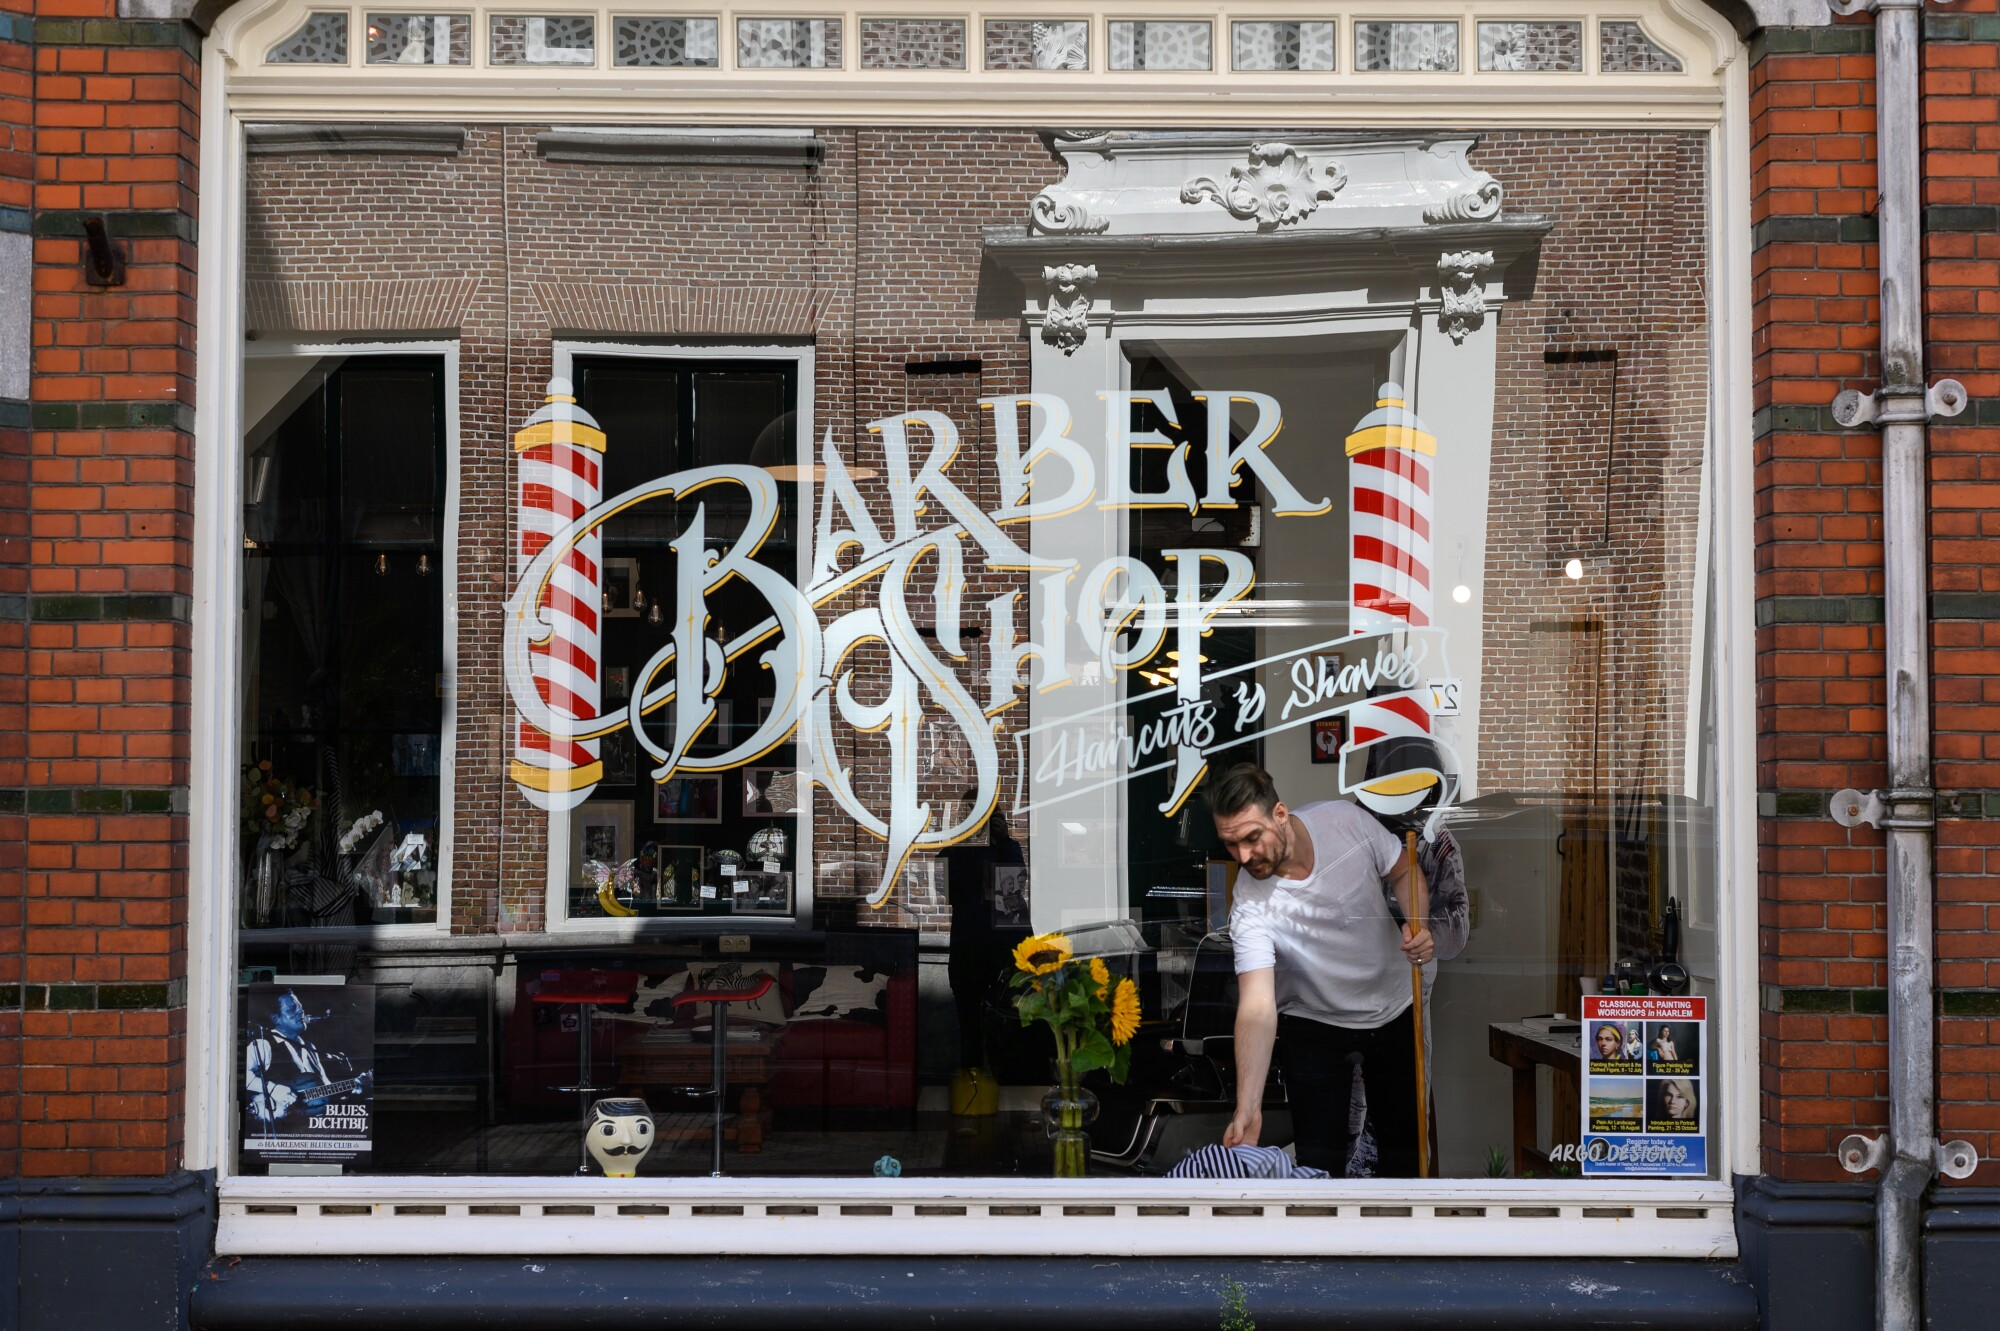 Is a Career as a Barber Right For Me?